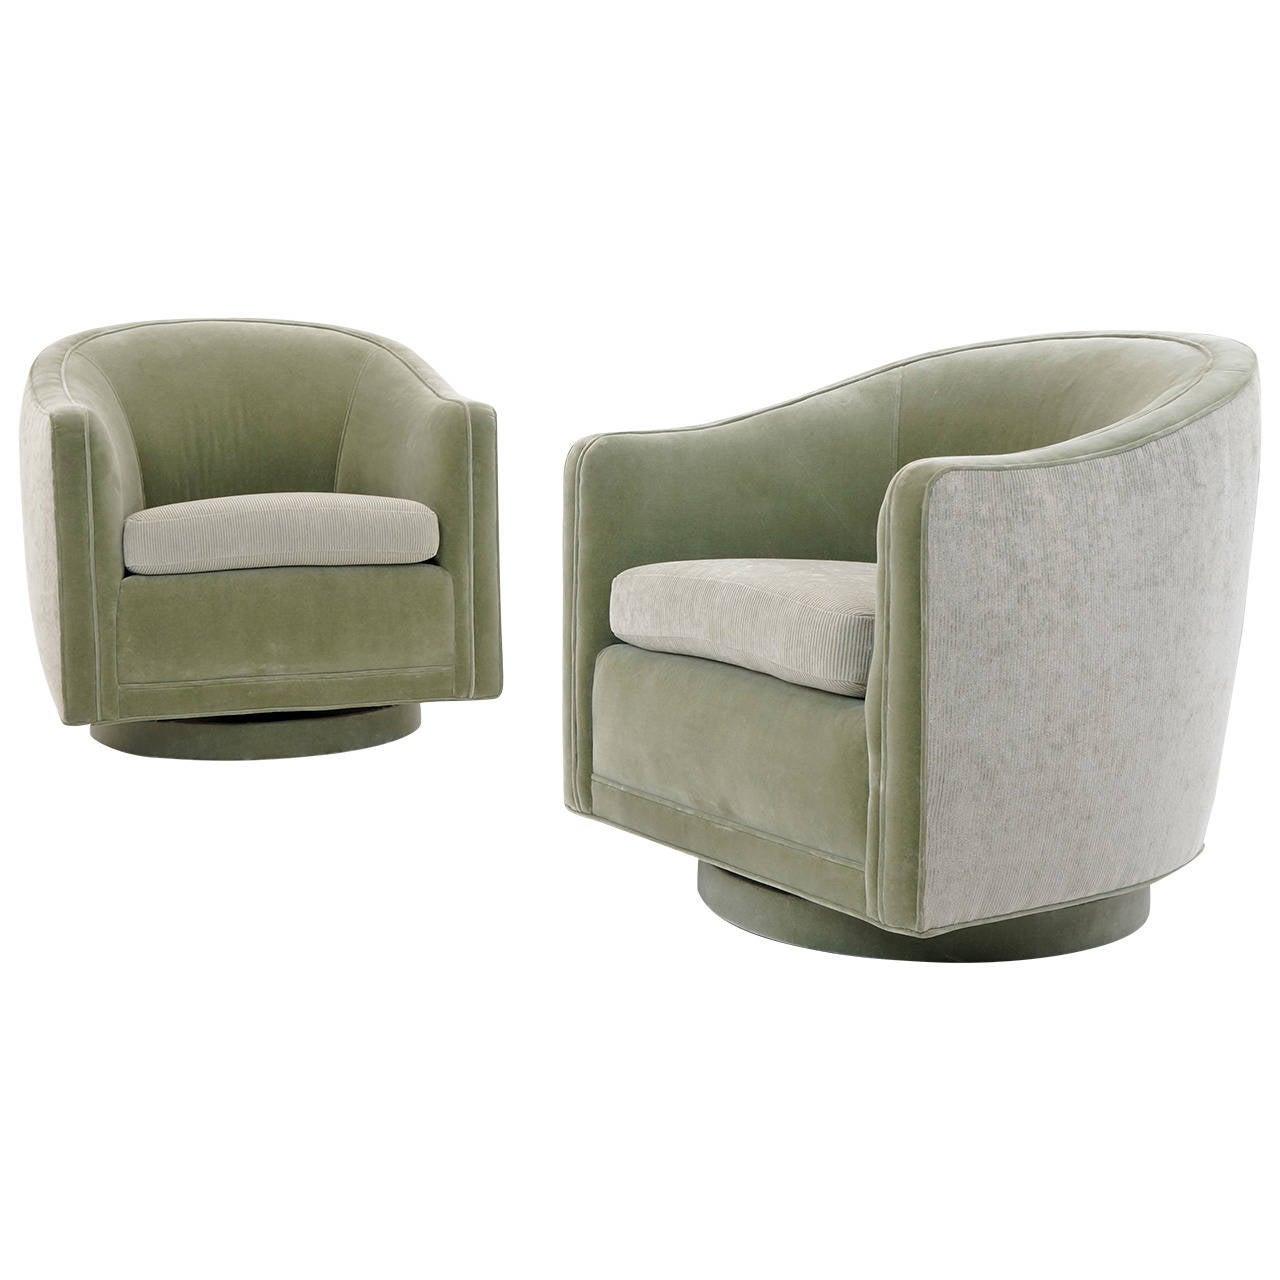 Pair Of Barrel Back Swivel Lounge Chairs By Edward Wormley